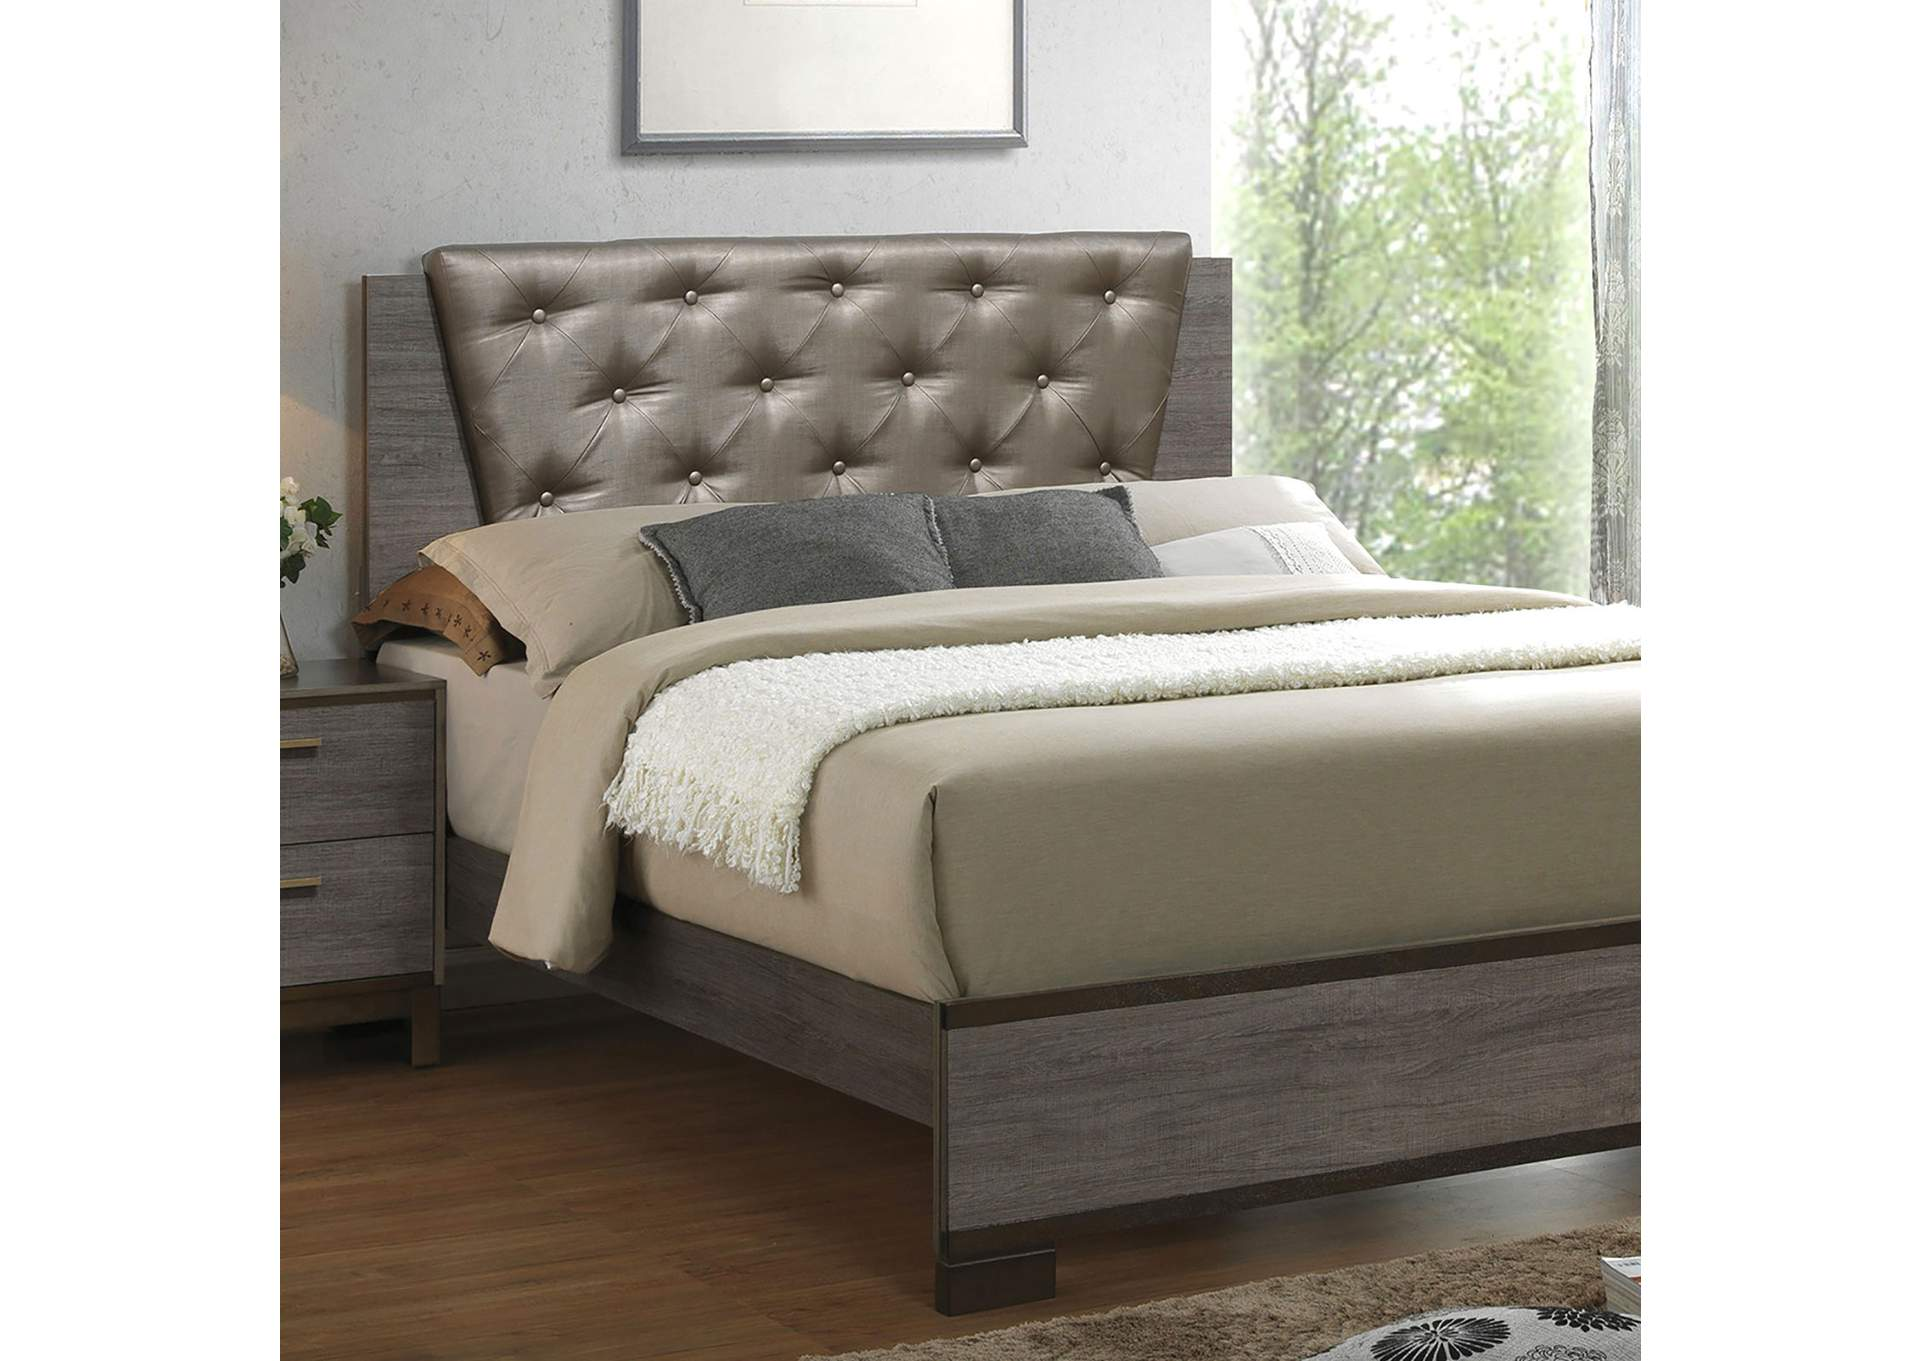 Manvel Antique Gray Upholstered Platform Queen Bed w/Exposed Wood Panel,Furniture of America